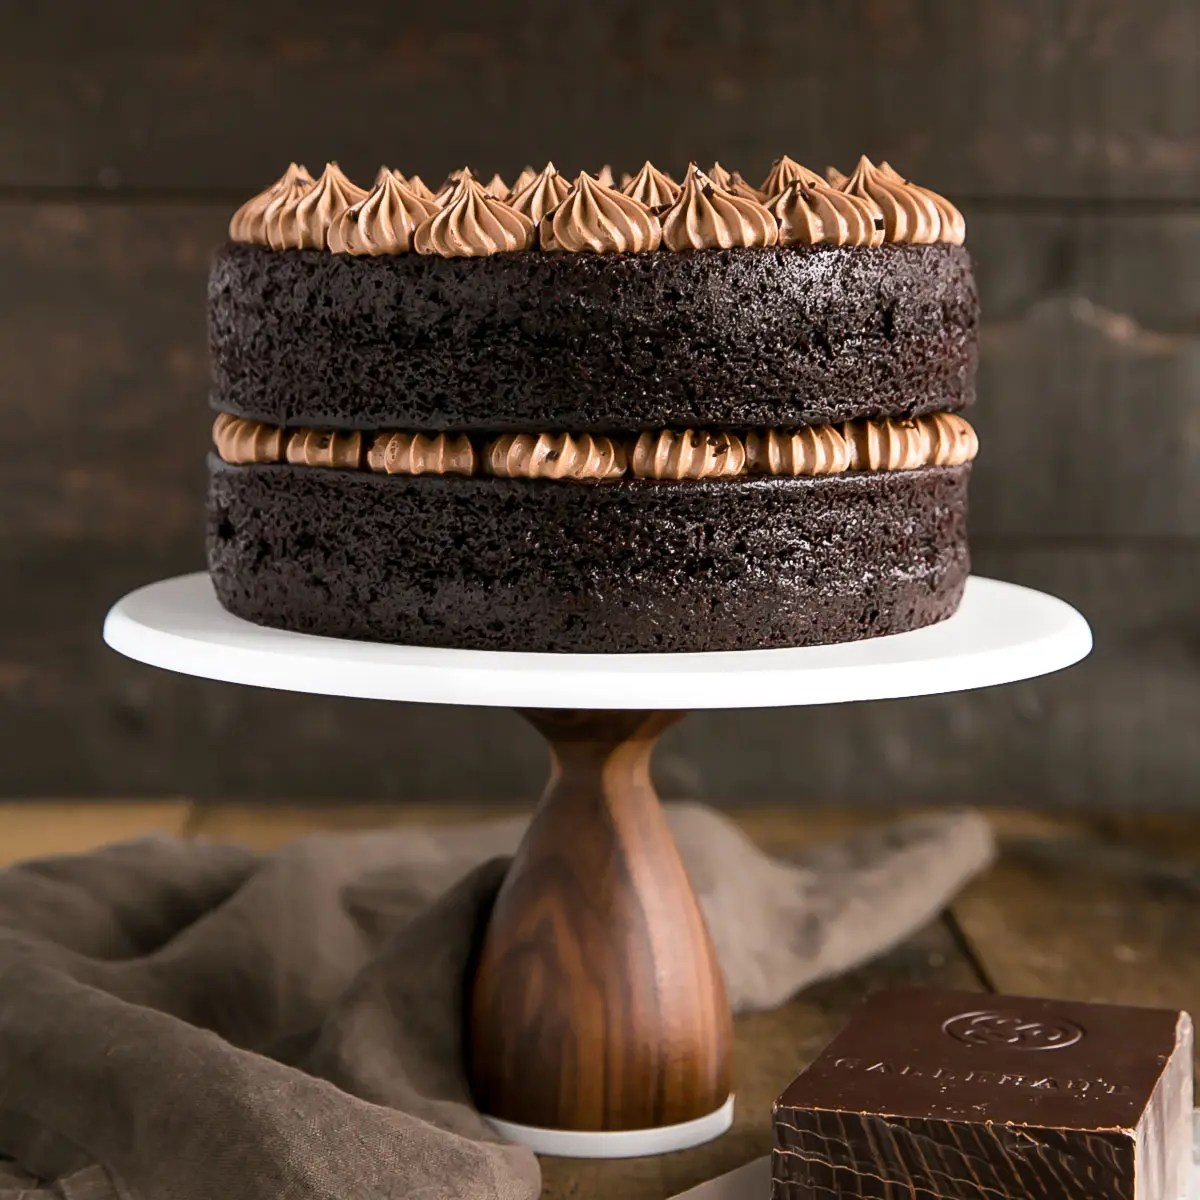 French Silk Pie Cake Copycat Deep N Delicious Chocolate